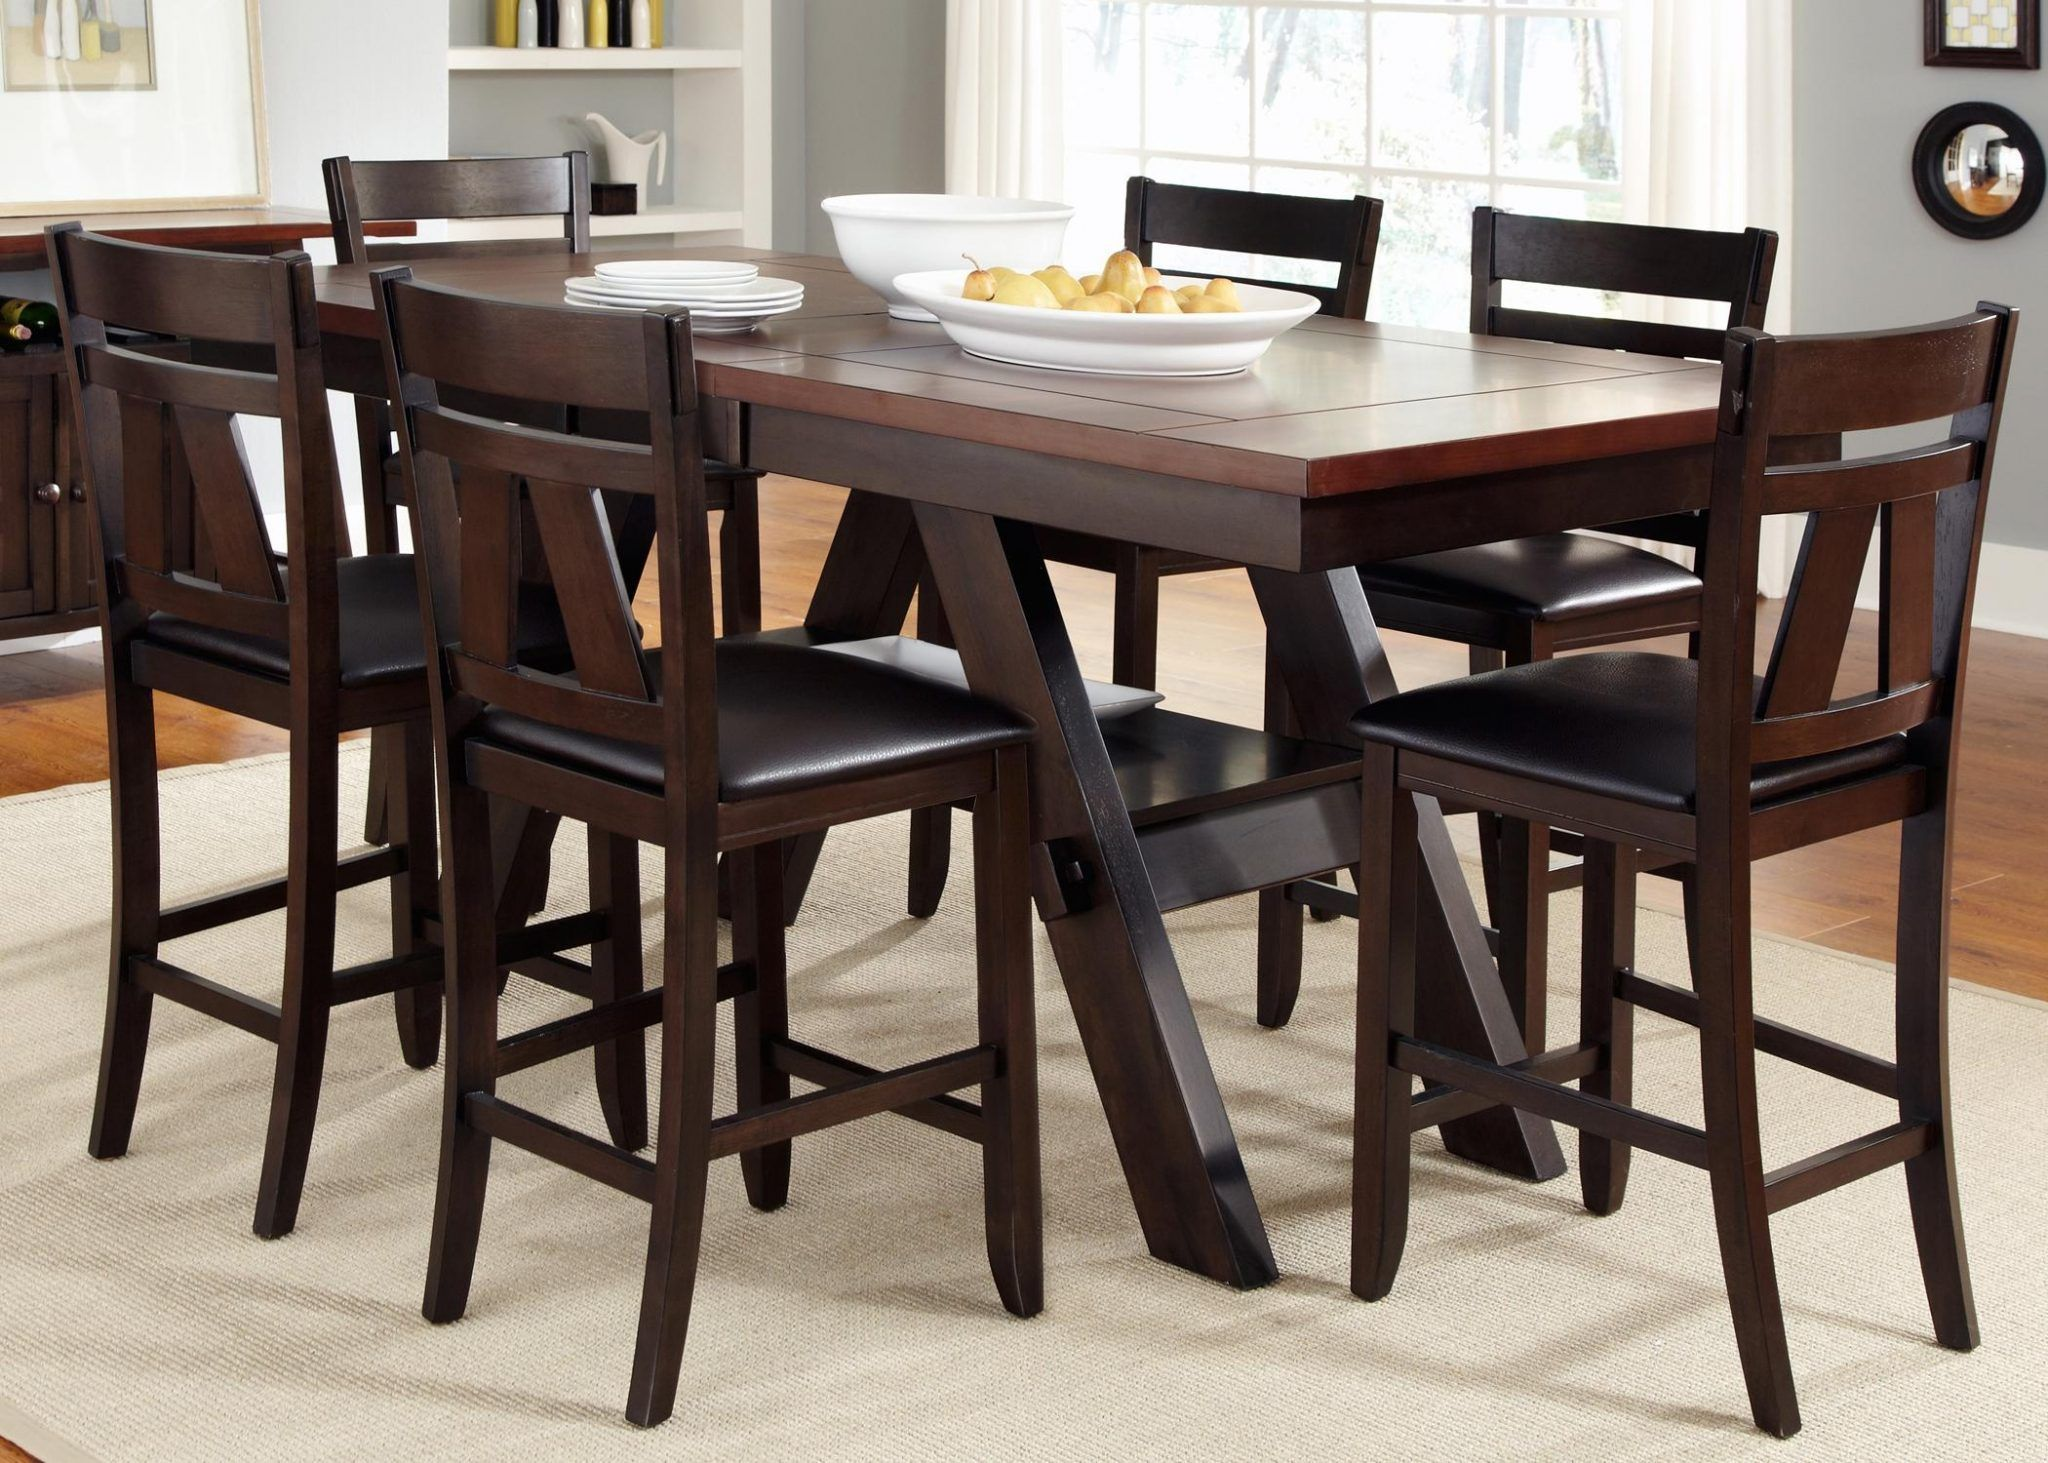 chairs height circle table bar high and dining kitchen room size of with pub wooden black chair counter full